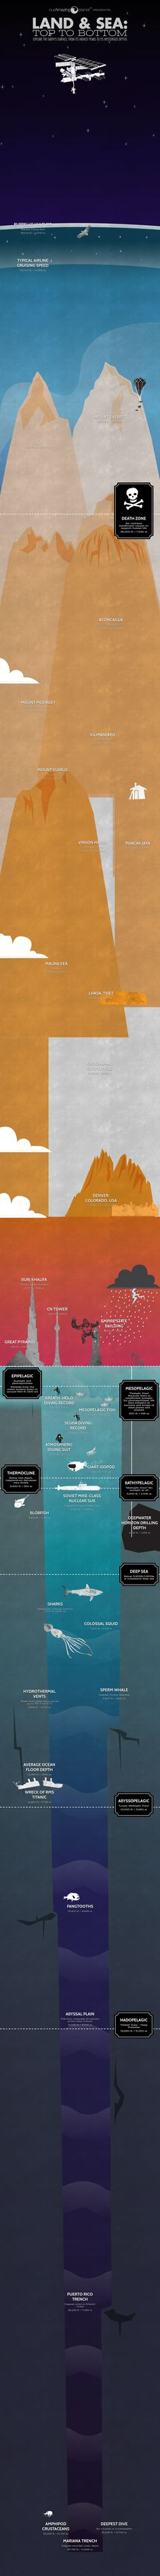 From Space to the Sea, and beyond - a graphic guiding you through the highest heights and the lowest lows, to scale.